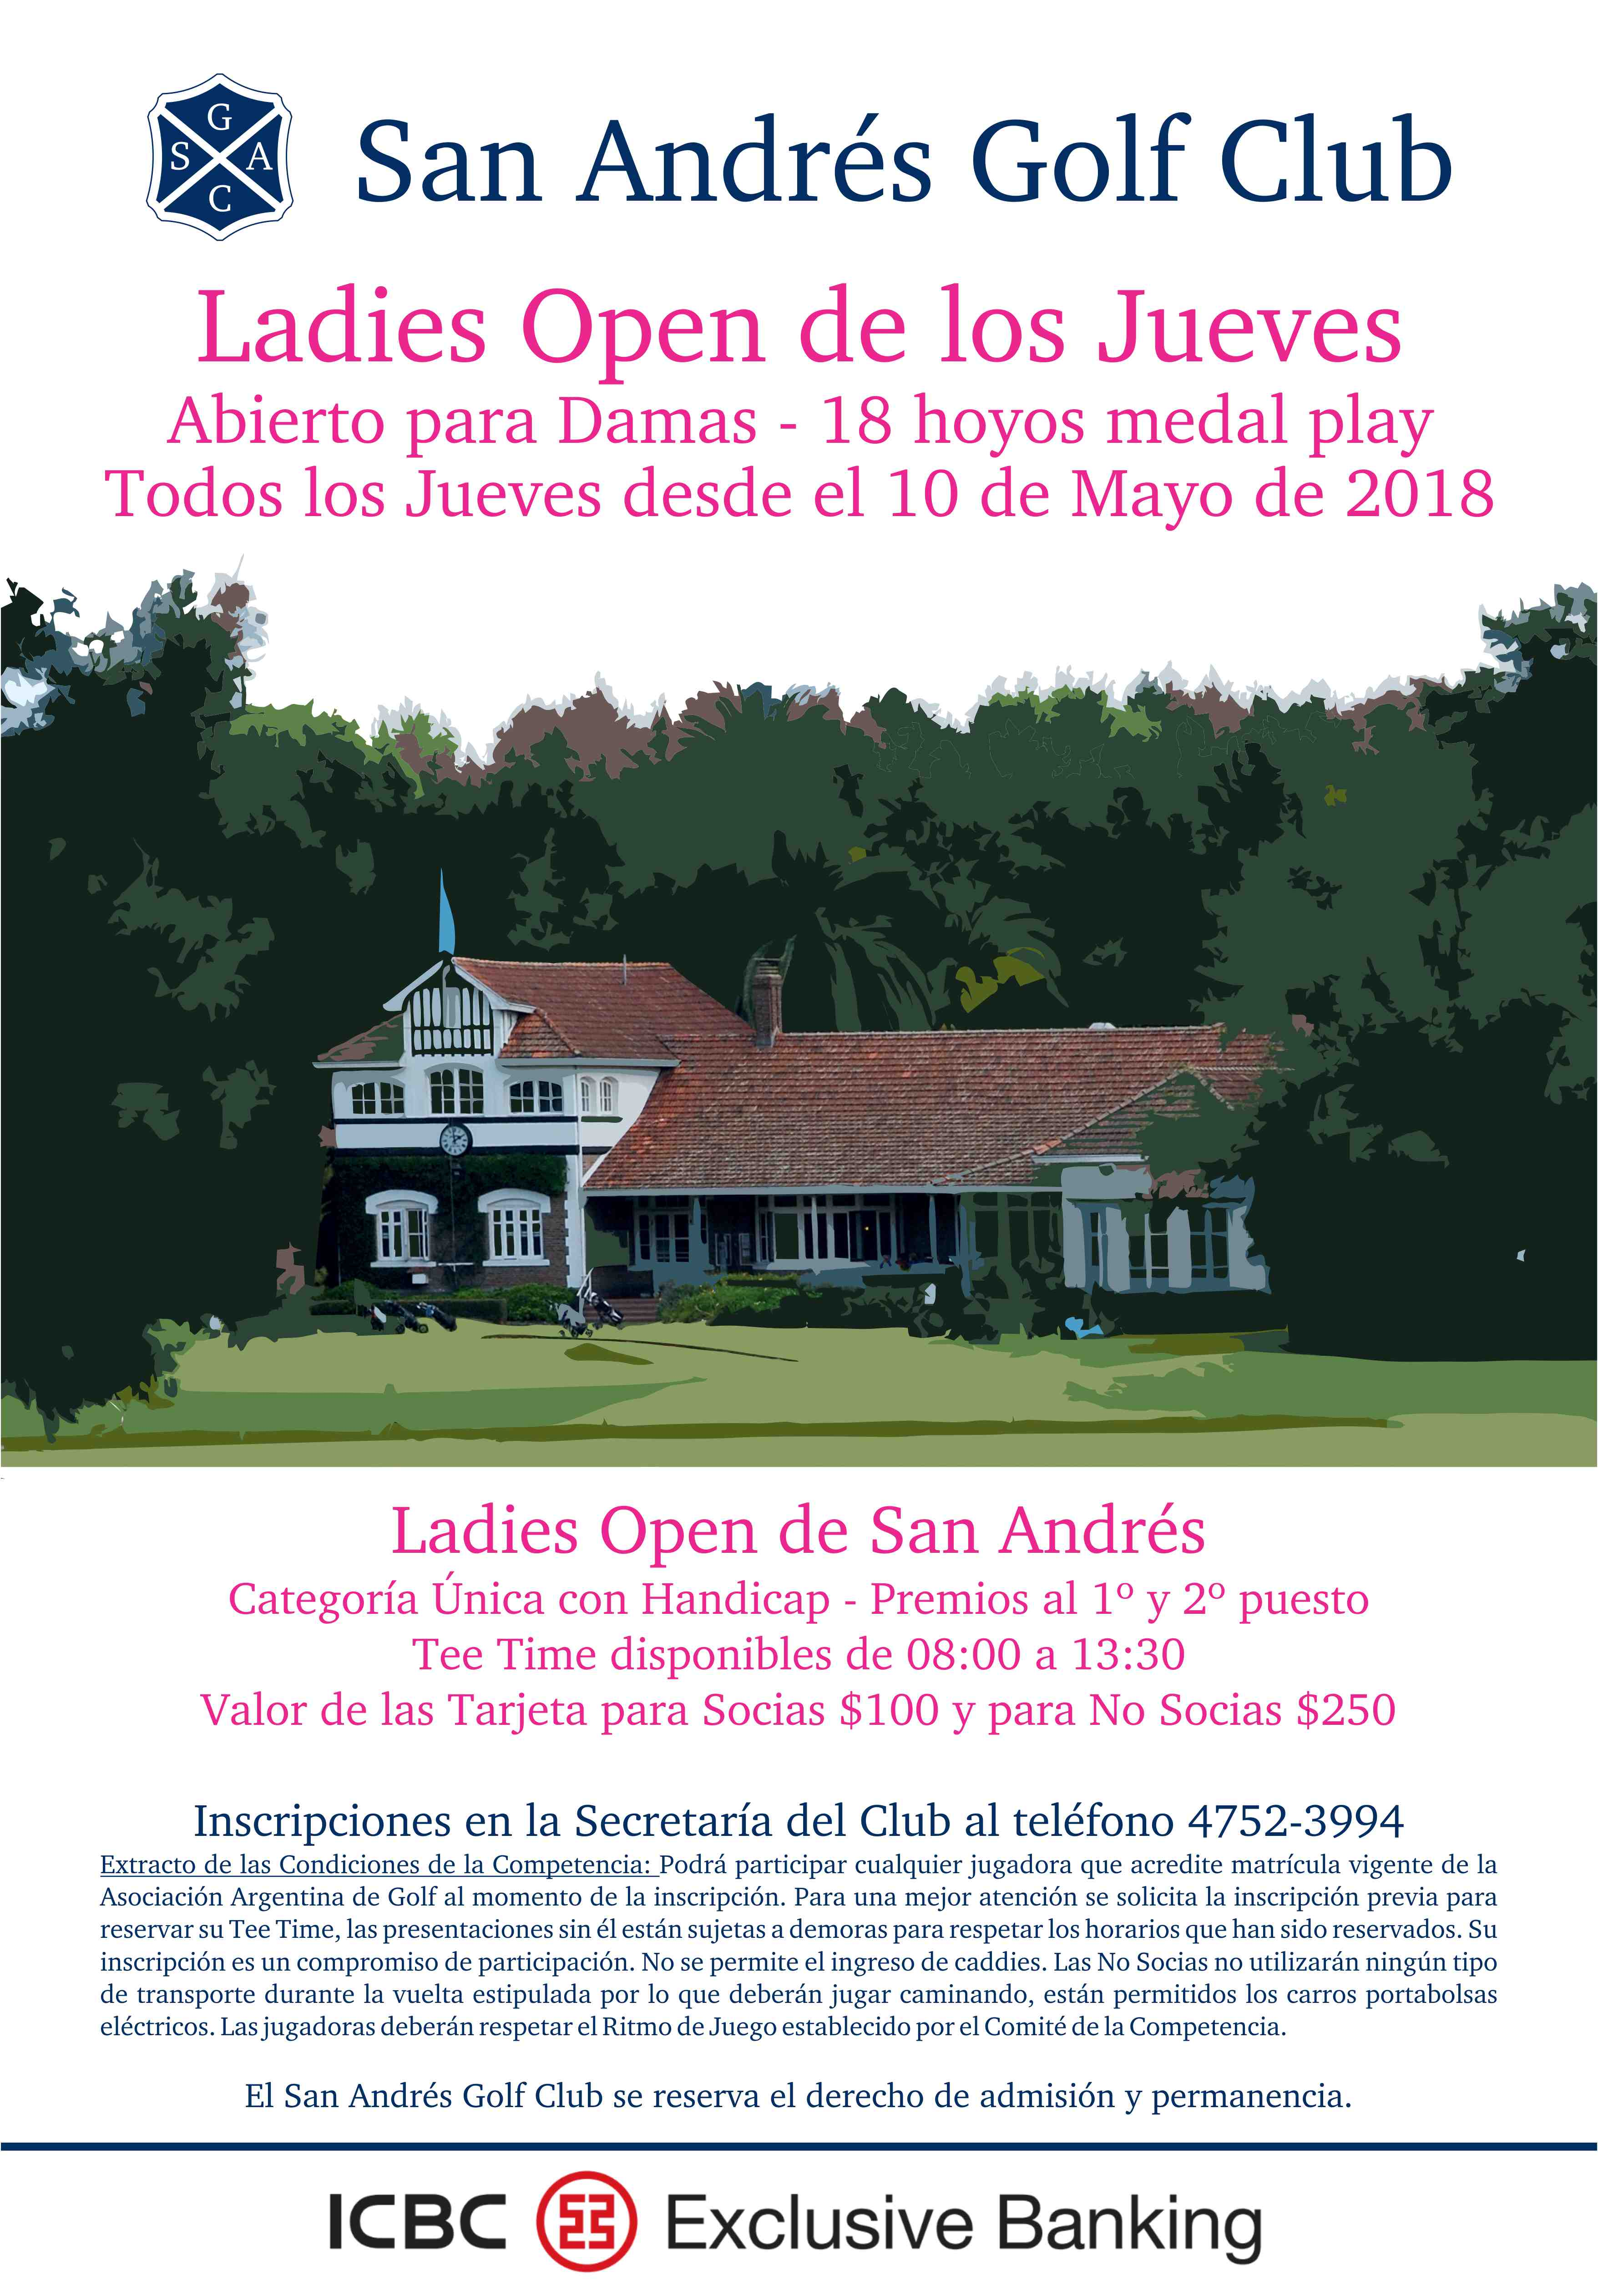 Ladies Open 2018 Rev B02 - A3